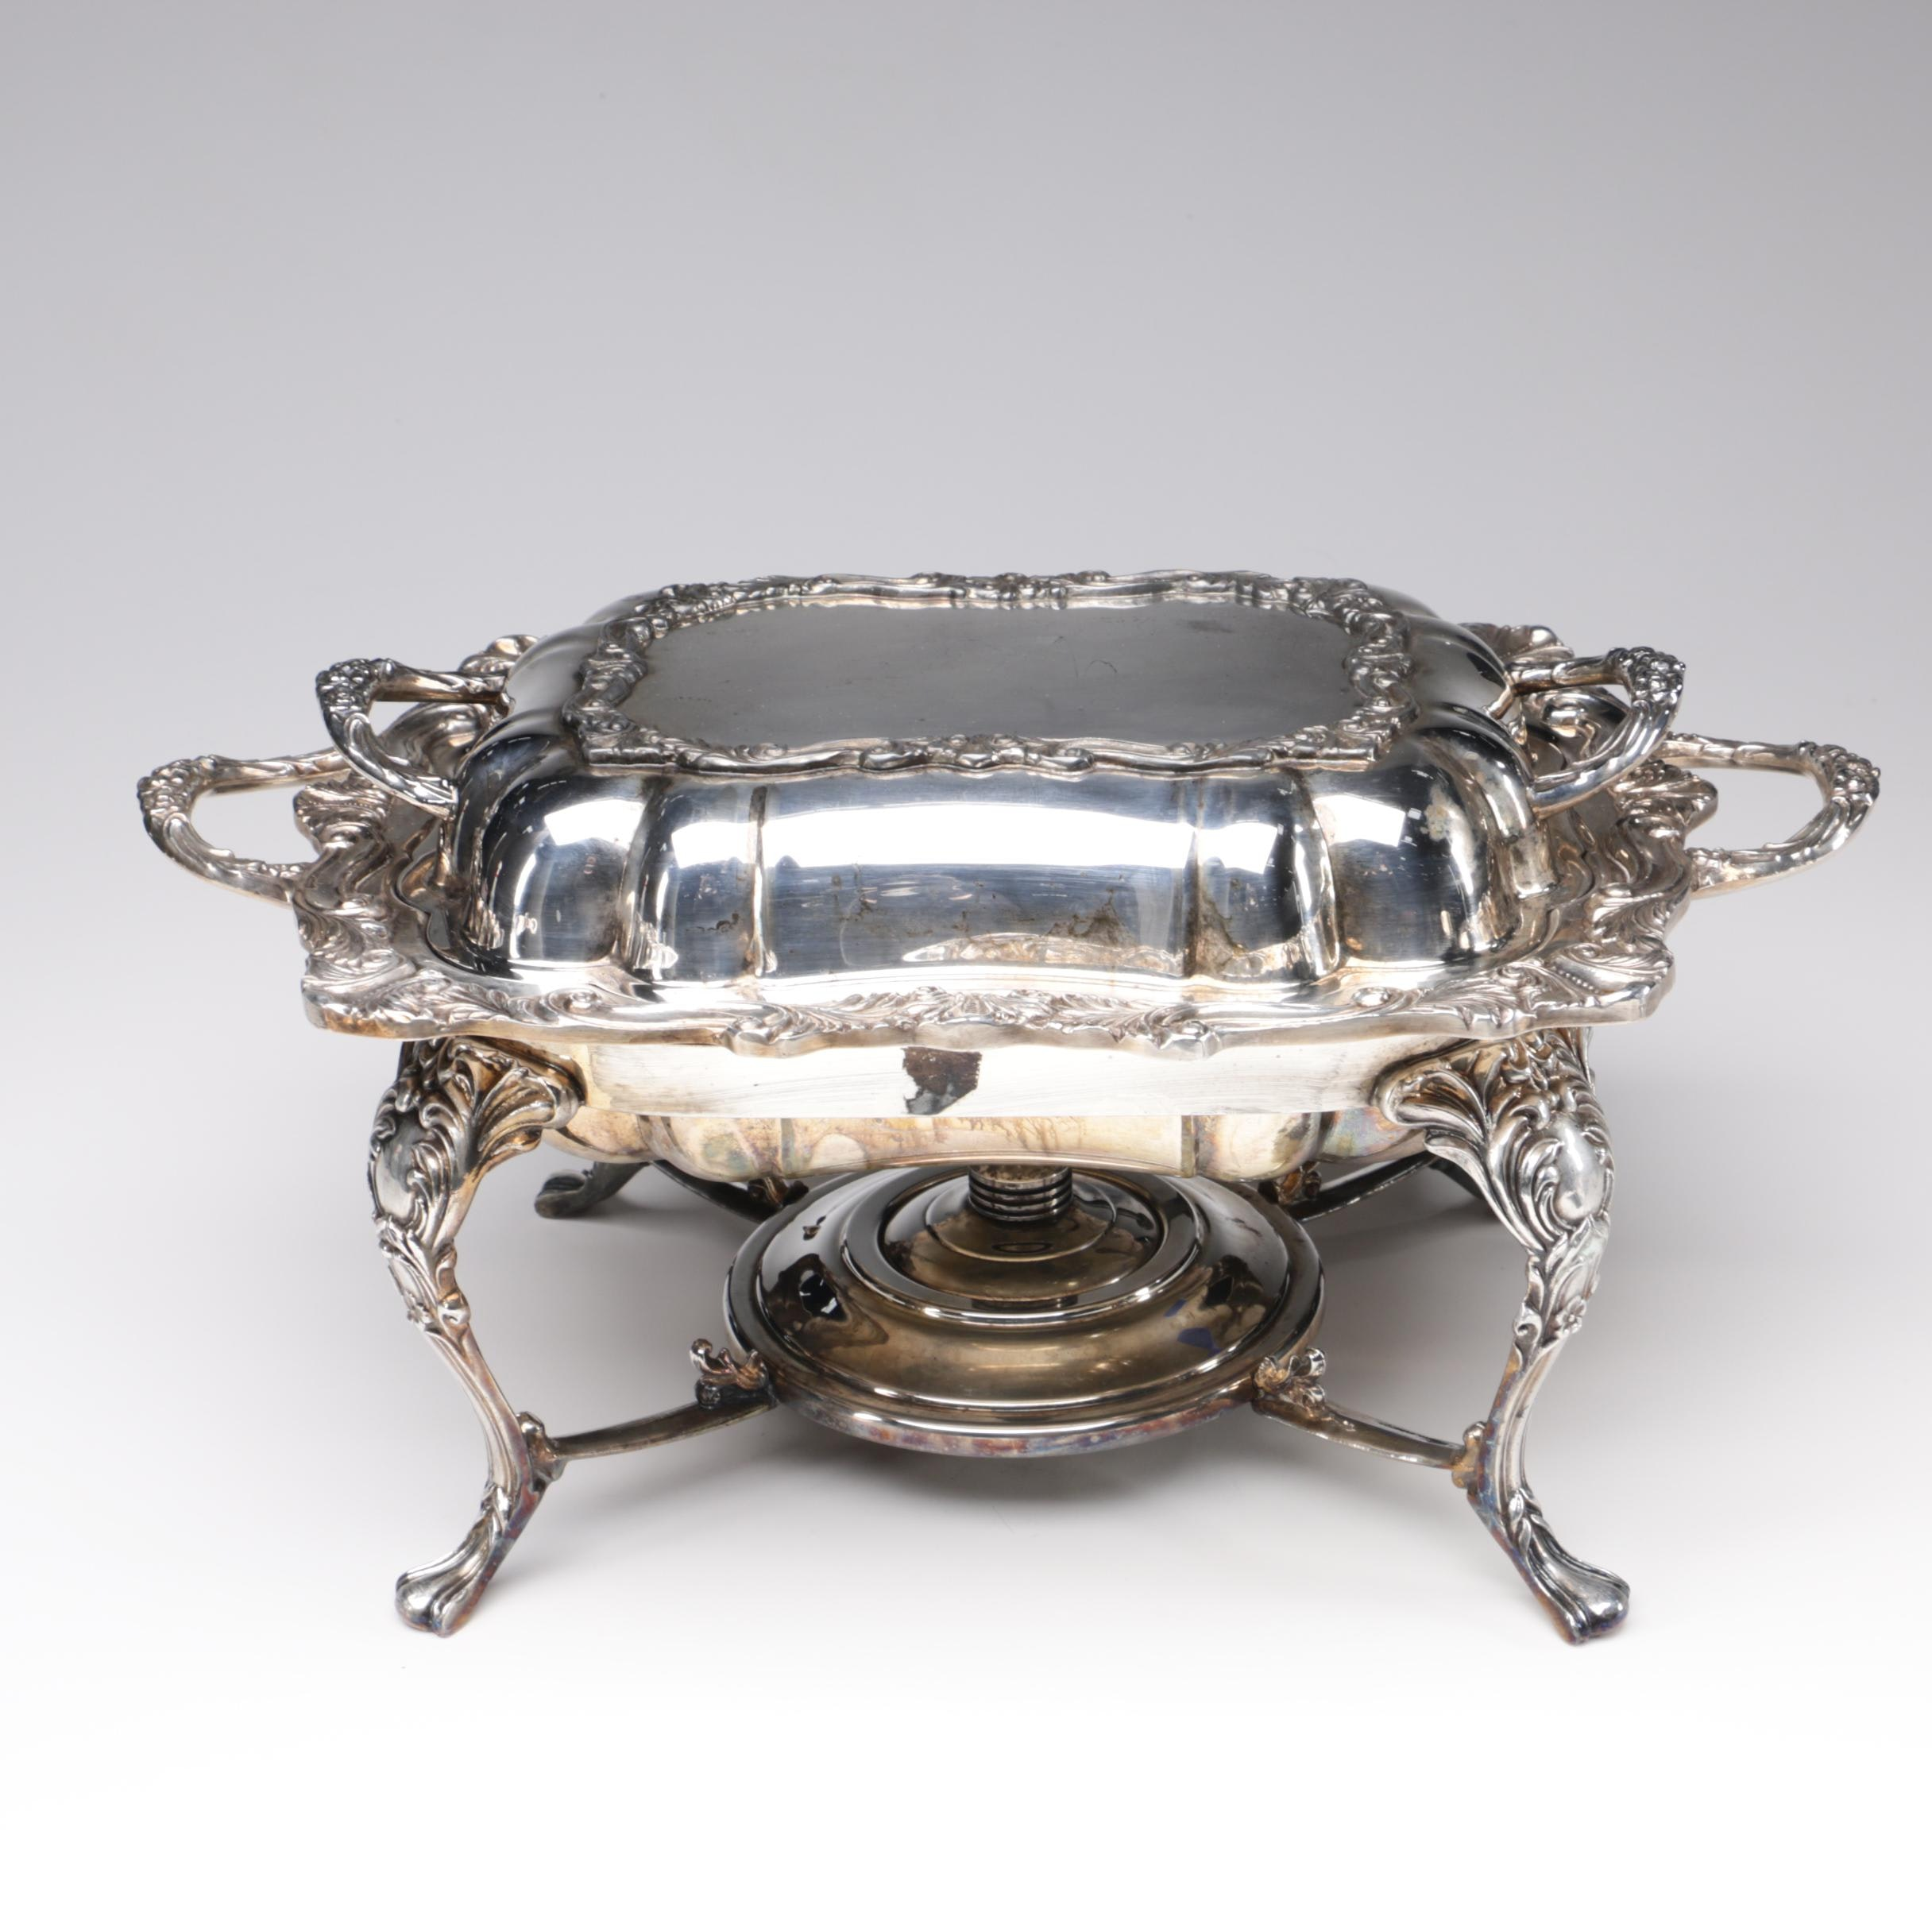 Sheridan Silver Plate Chafing Dish on Warming Stand, Early 20th Century